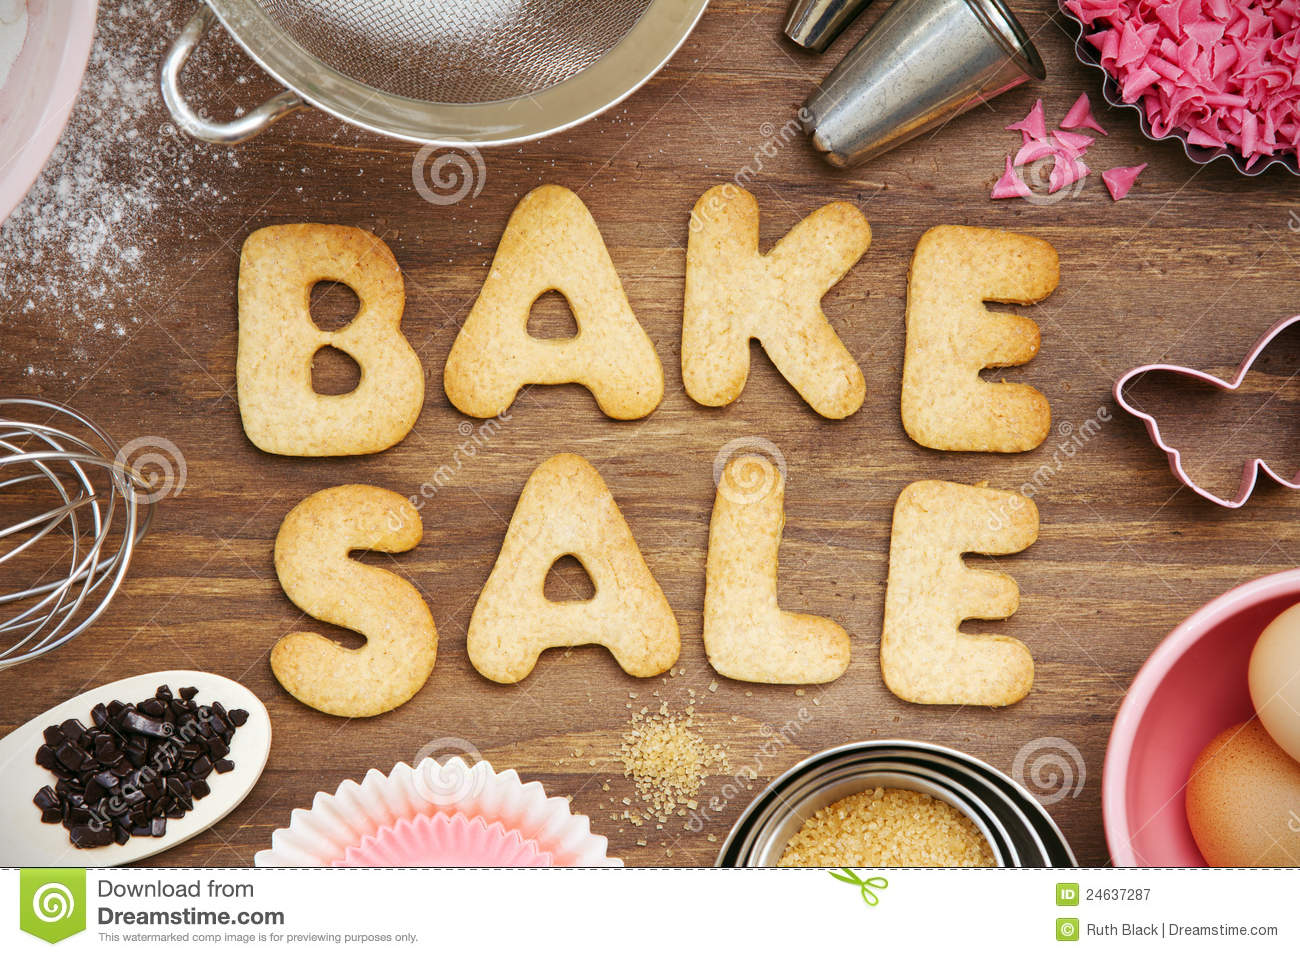 Bake Sale Cookies Royalty Free Stock Photography Image